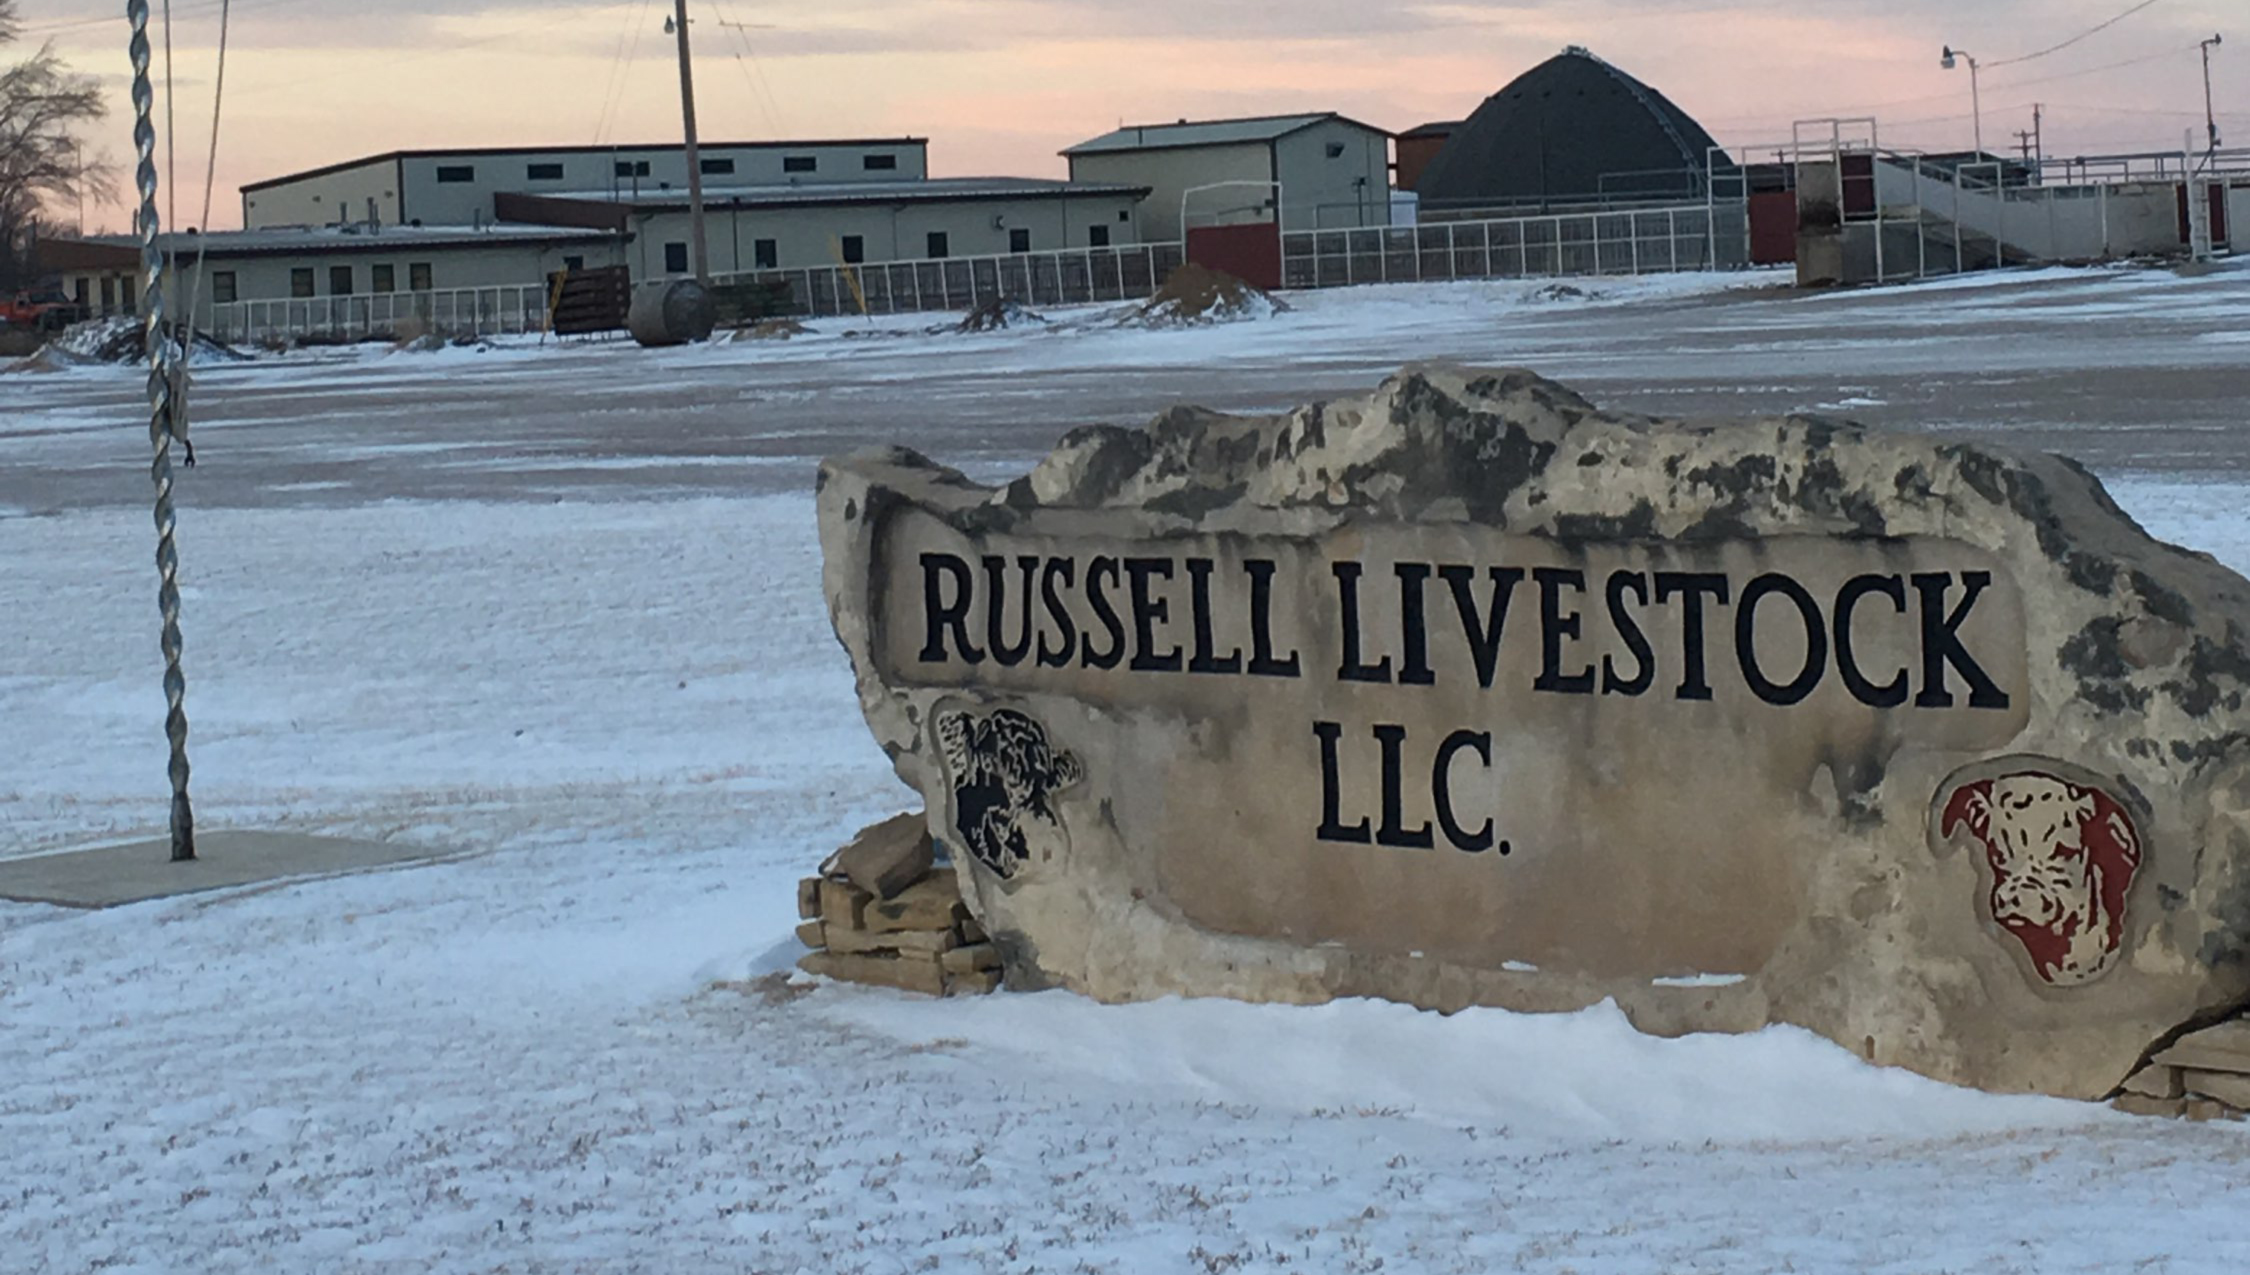 Russell Livestock Front altered